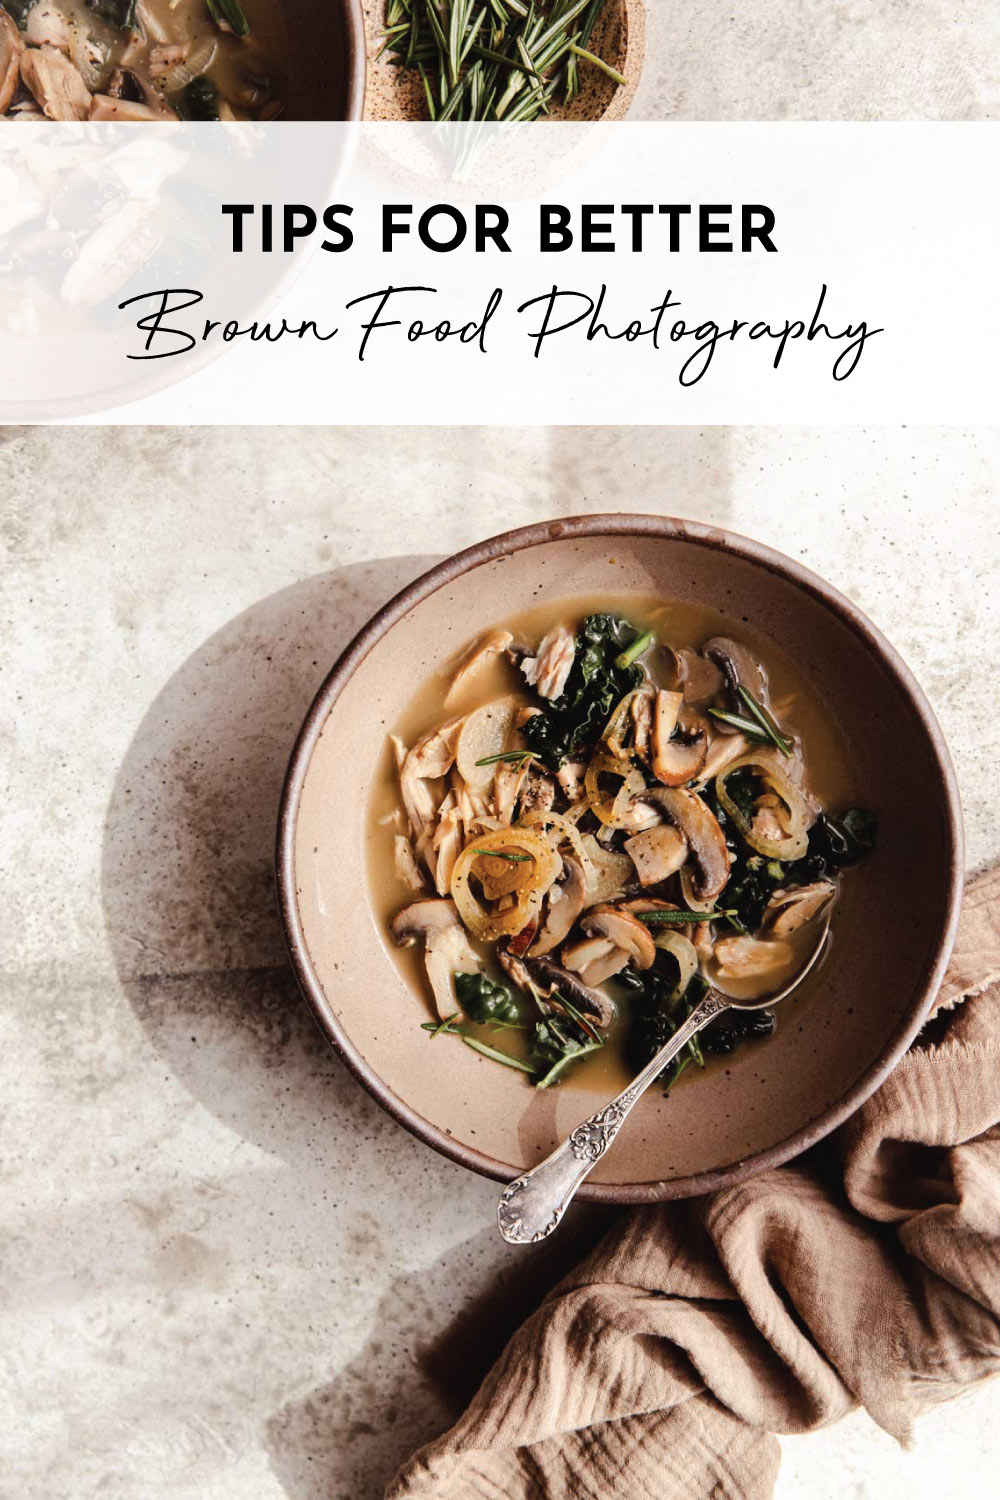 Tips for Better Brown Food Photography